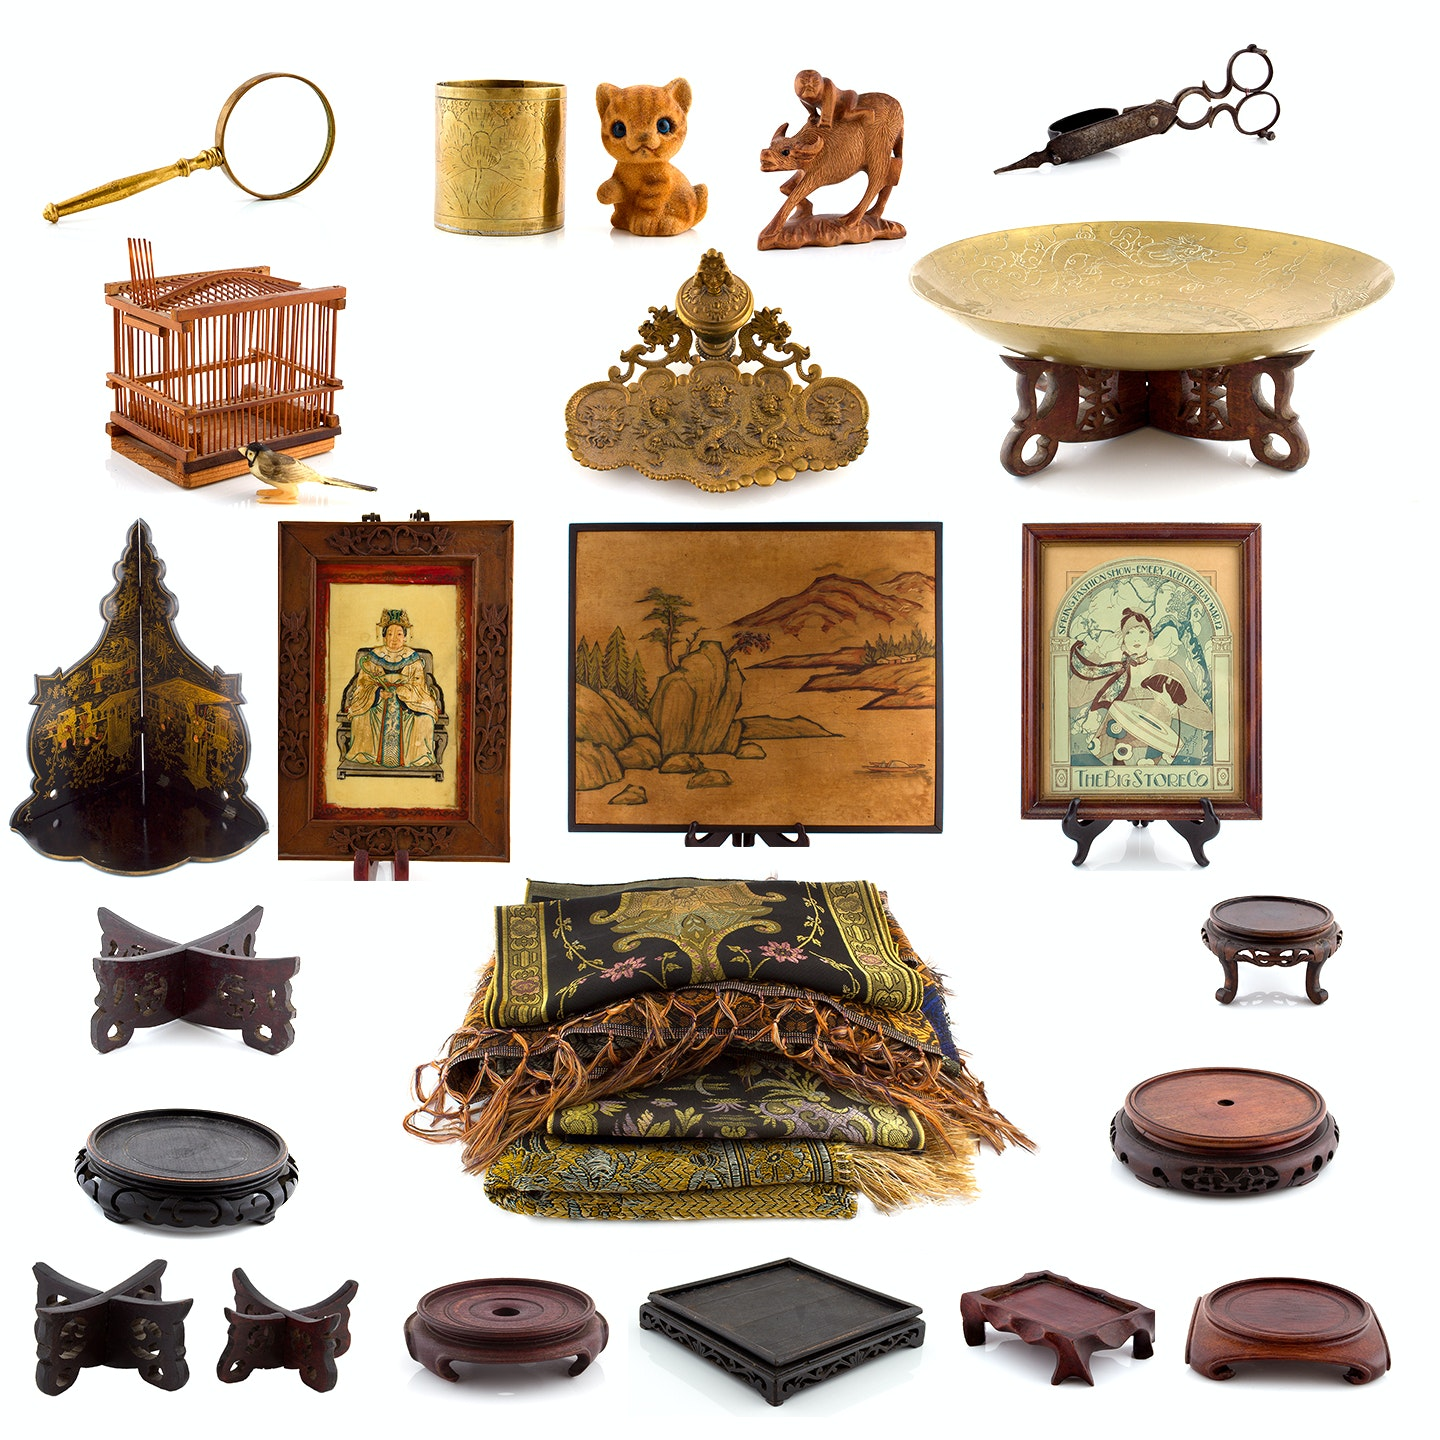 Asian Inspired Art, Textiles and Display Pieces